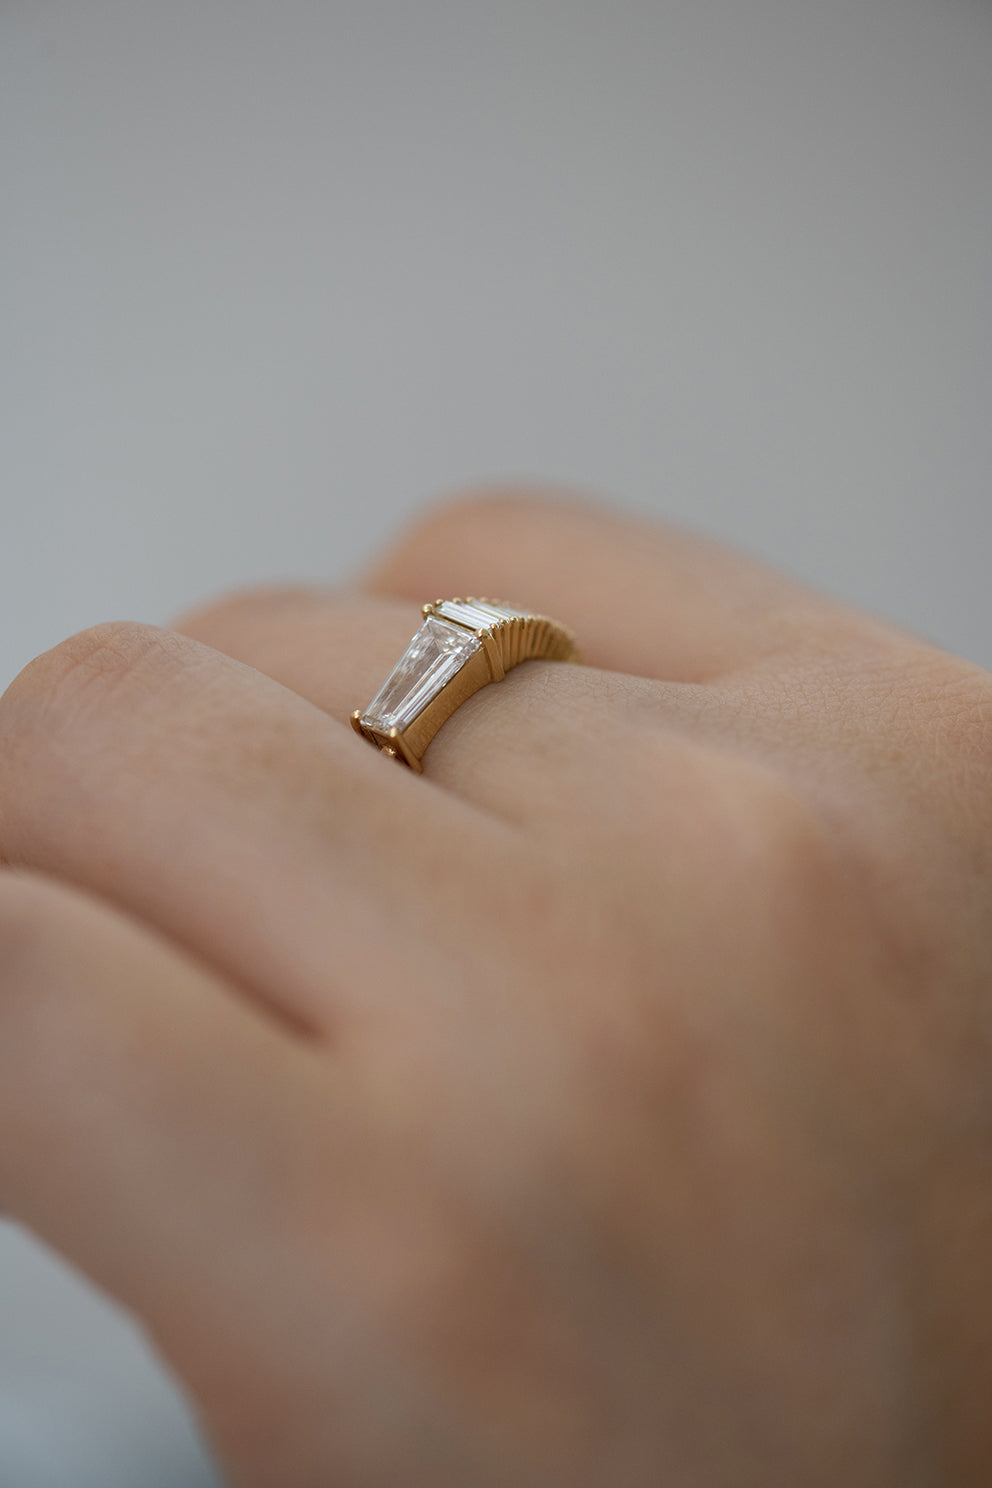 Trapeze Diamond Engagement Ring - OOAK Ring on Hand Side View